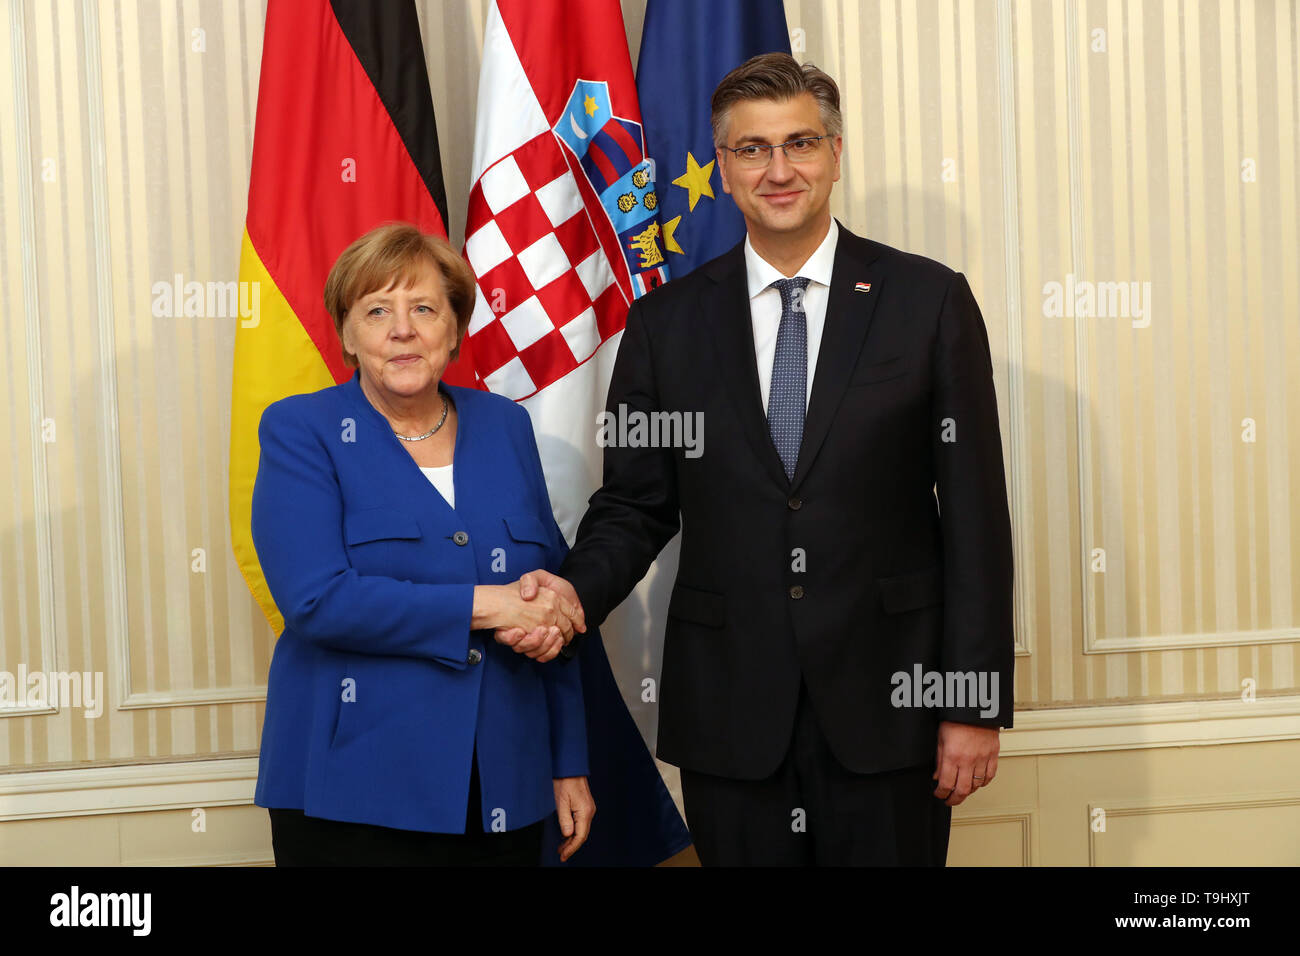 Zagreb, Croatia. 18th May, 2019. Croatian Prime Minister Andrej Plenkovic (R) shakes hands with visiting German Chancellor Angela Merkel in Zagreb, Croatia, May 18, 2019. Croatia is on the right path to entry into the Schengen area and has the support of Germany, German Chancellor Angela Merkel said here on Saturday after a formal part of the talks with Croatian Prime Minister Andrej Plenkovic. Credit: Robert Anic/Xinhua/Alamy Live News - Stock Image